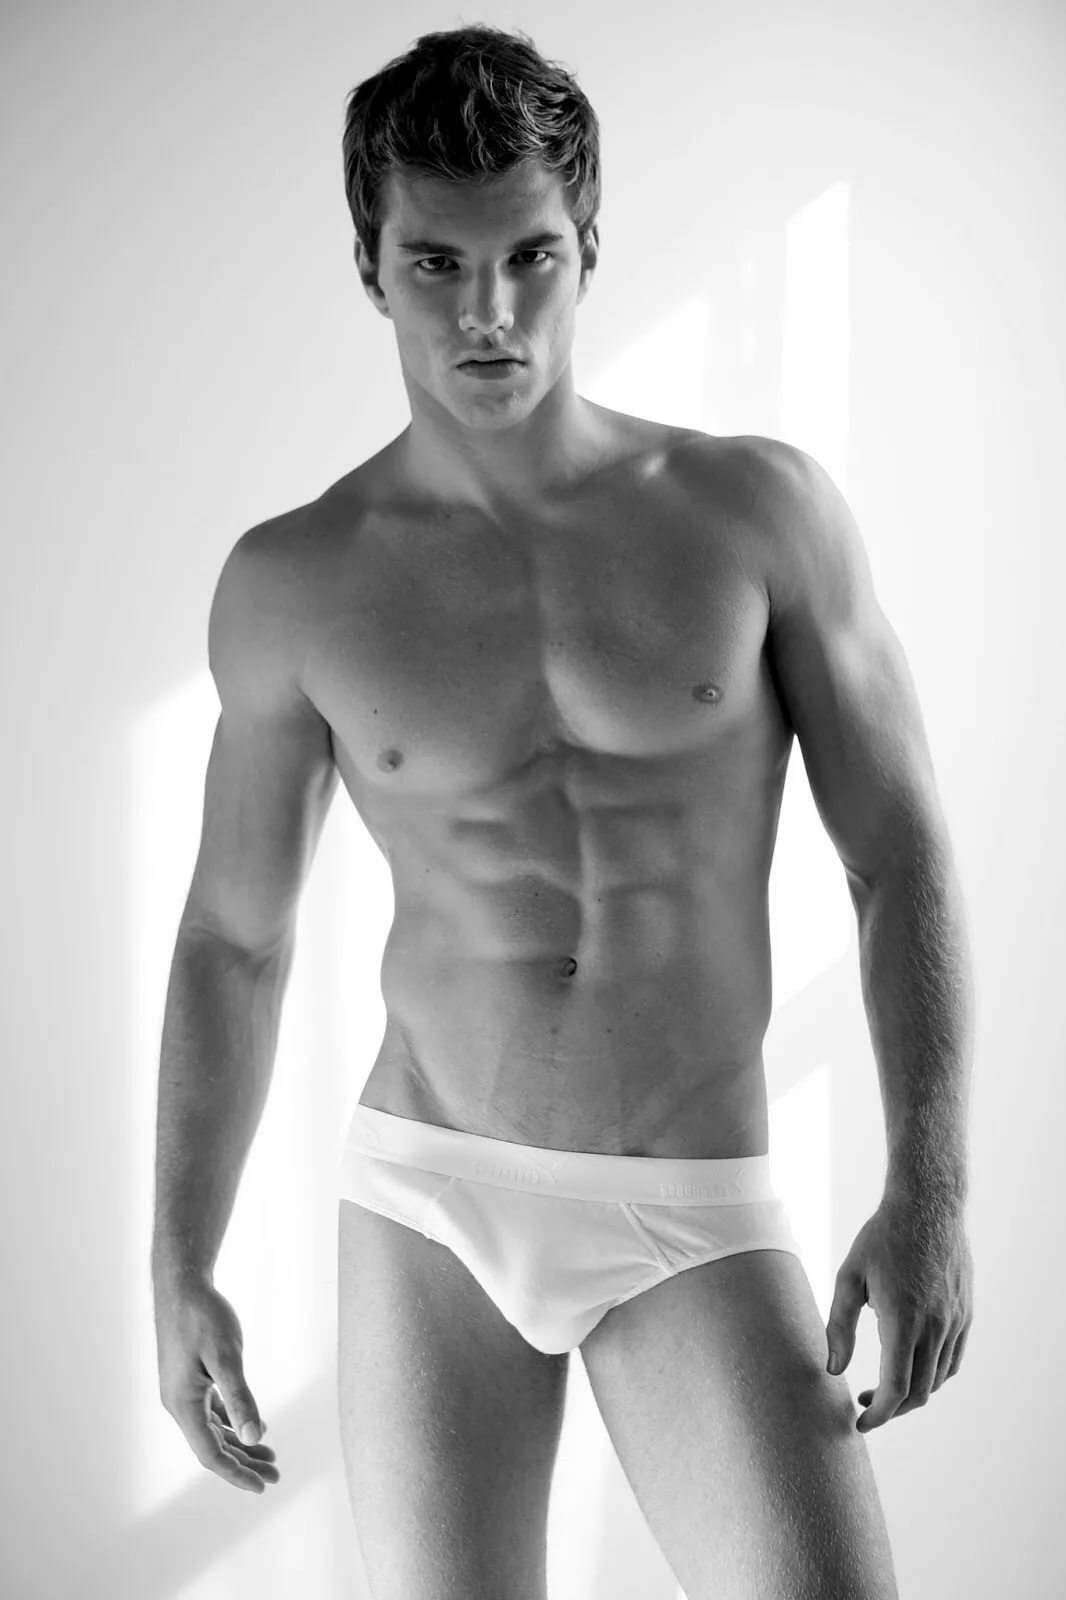 Gallery male model naked